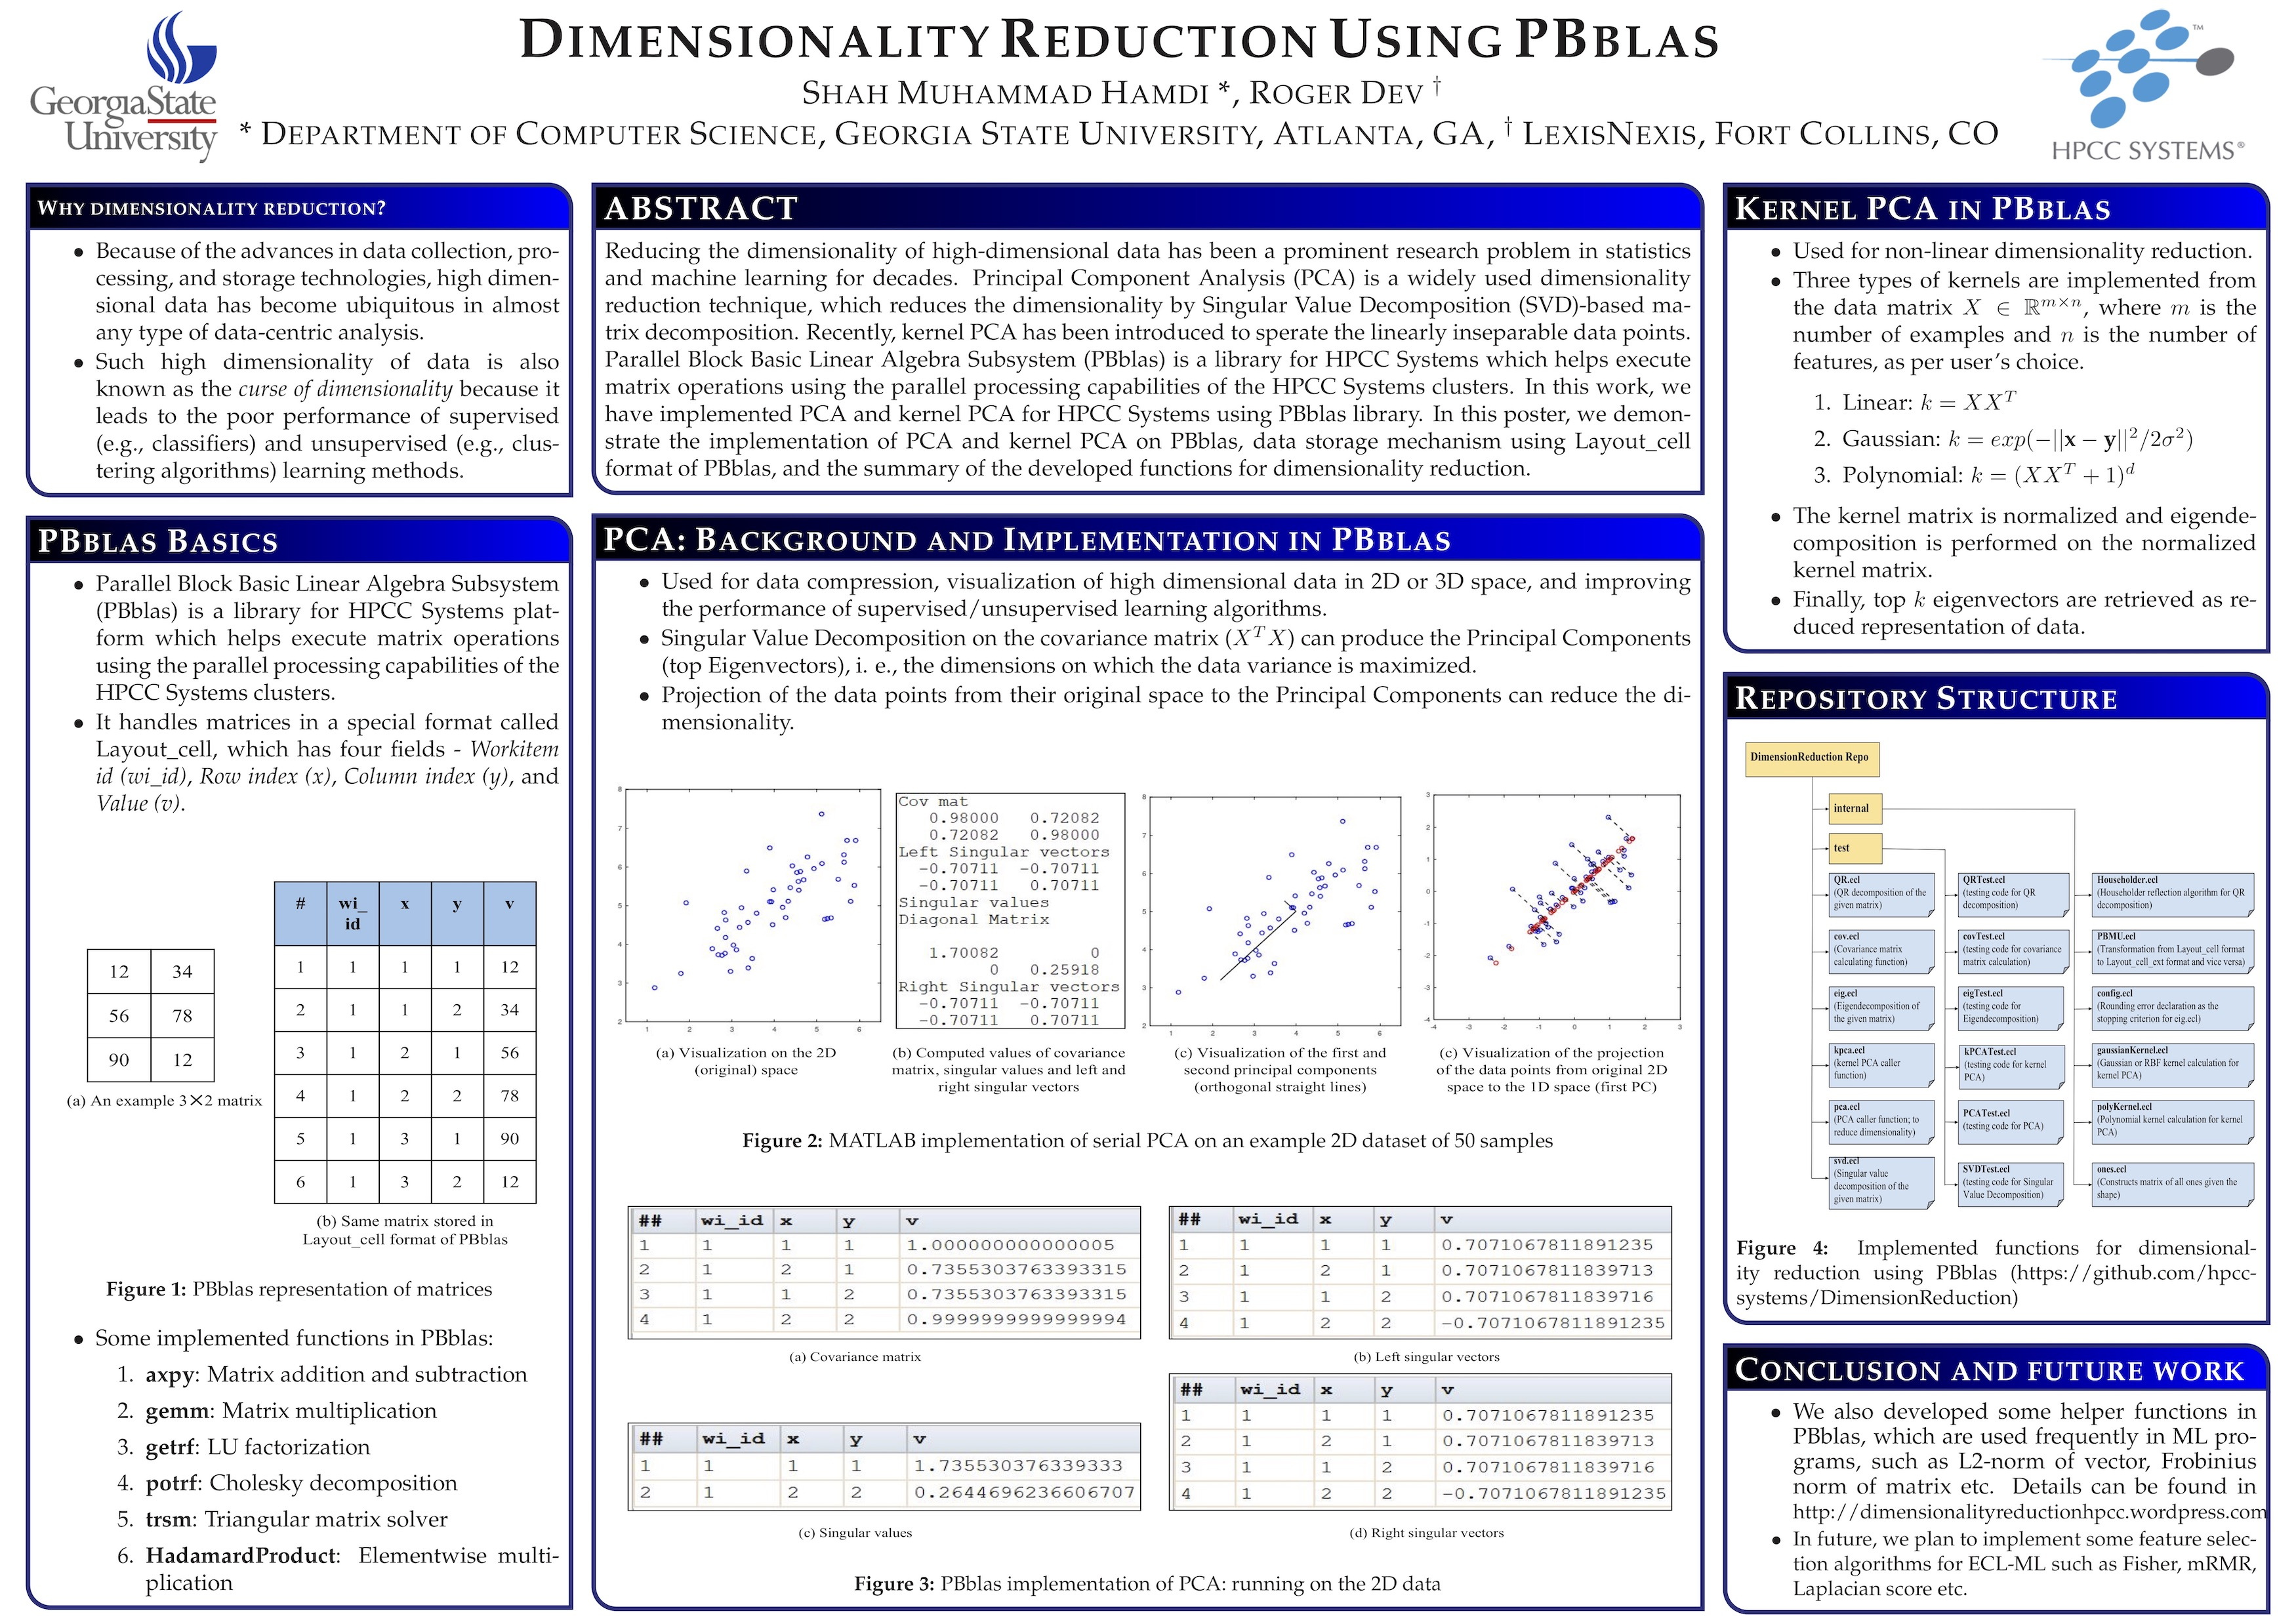 Shah Muhammad Hamdi - Dimensionality reductions using PBblas